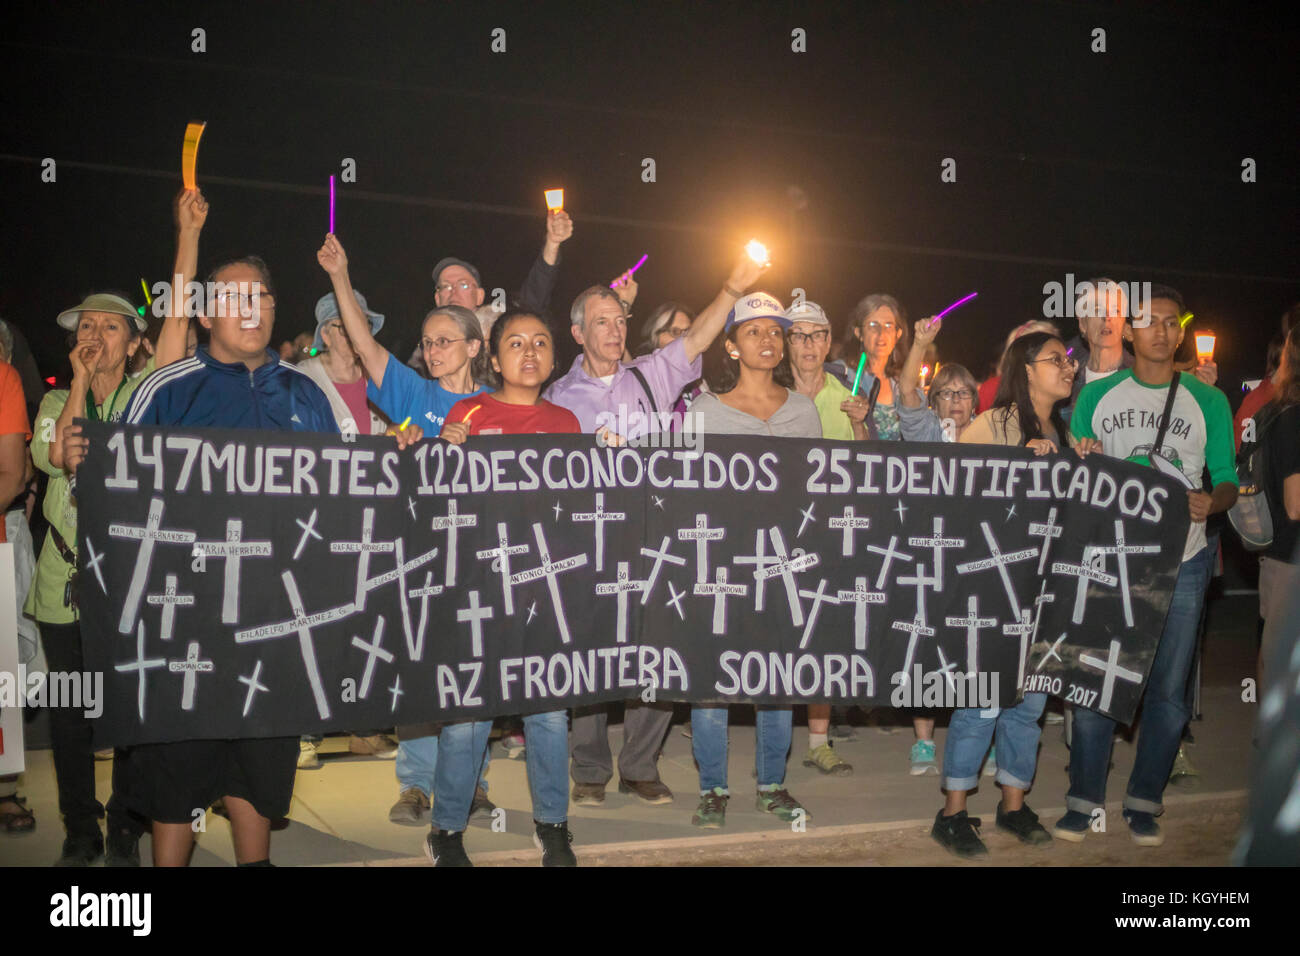 Eloy, Arizona, USA. 10th Nov, 2017. A rally and vigil at the Eloy Immigrant Detention Center protests the detention - Stock Image